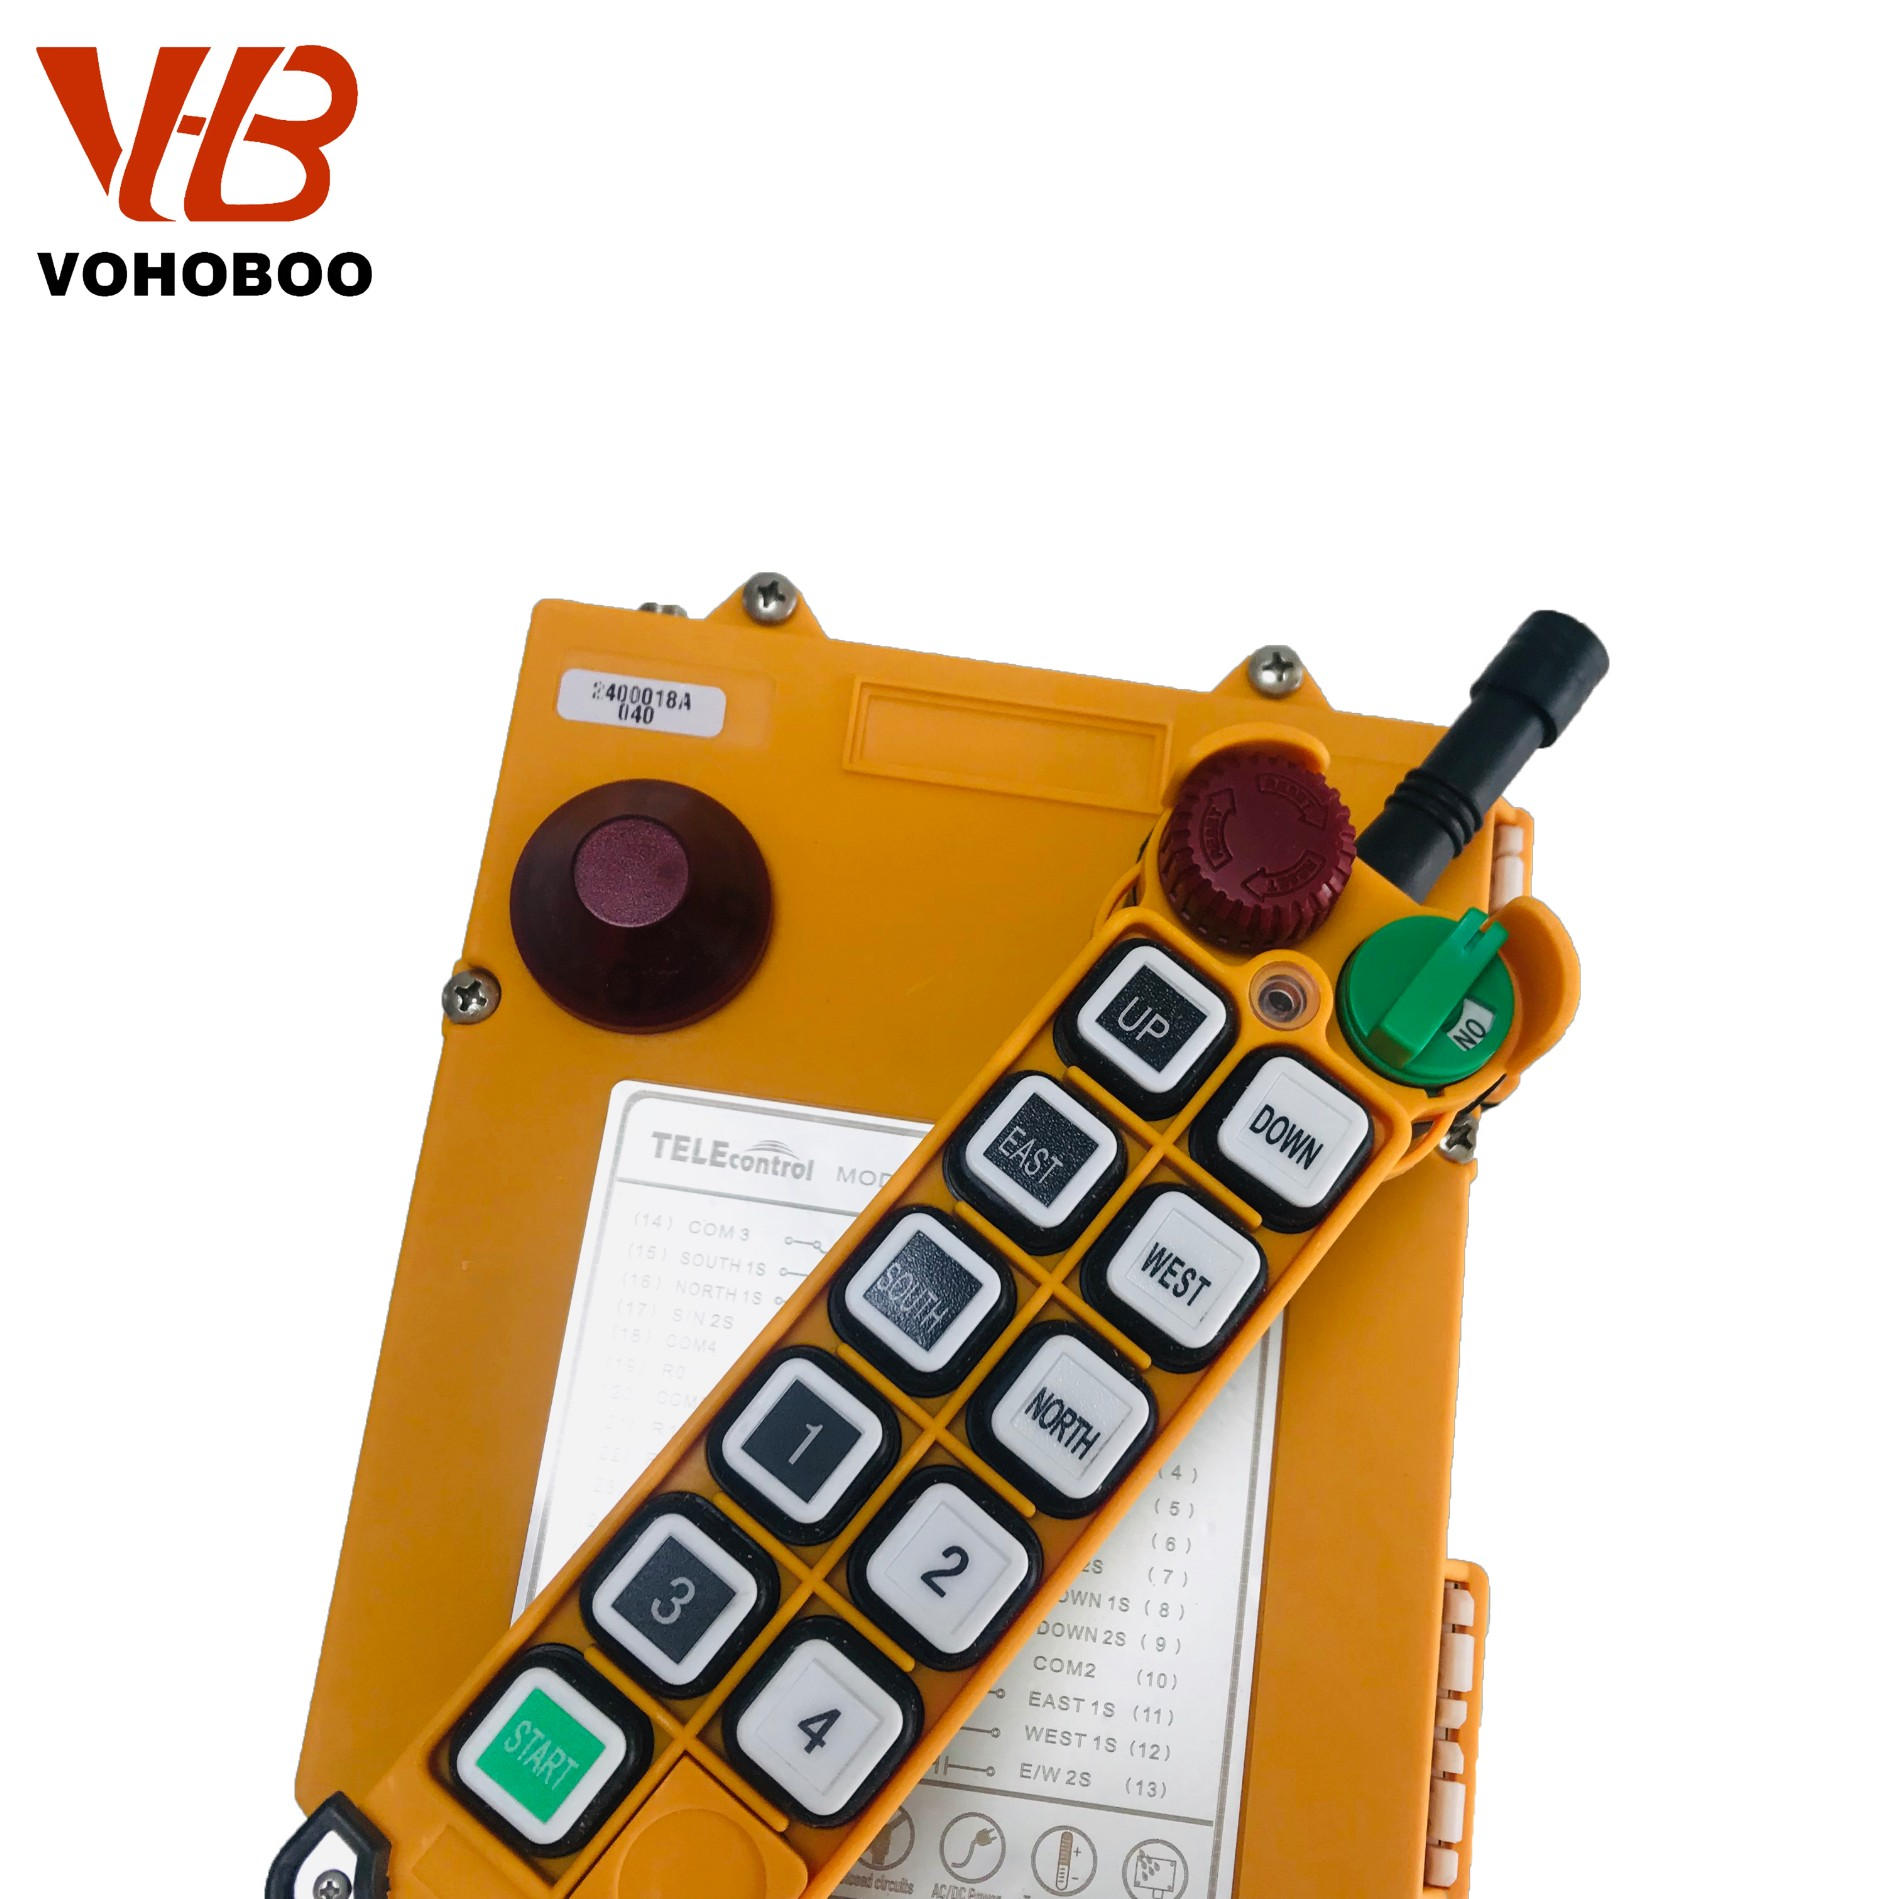 F24-10S/10D remote controller Manufacturers, F24-10S/10D remote controller Factory, Supply F24-10S/10D remote controller